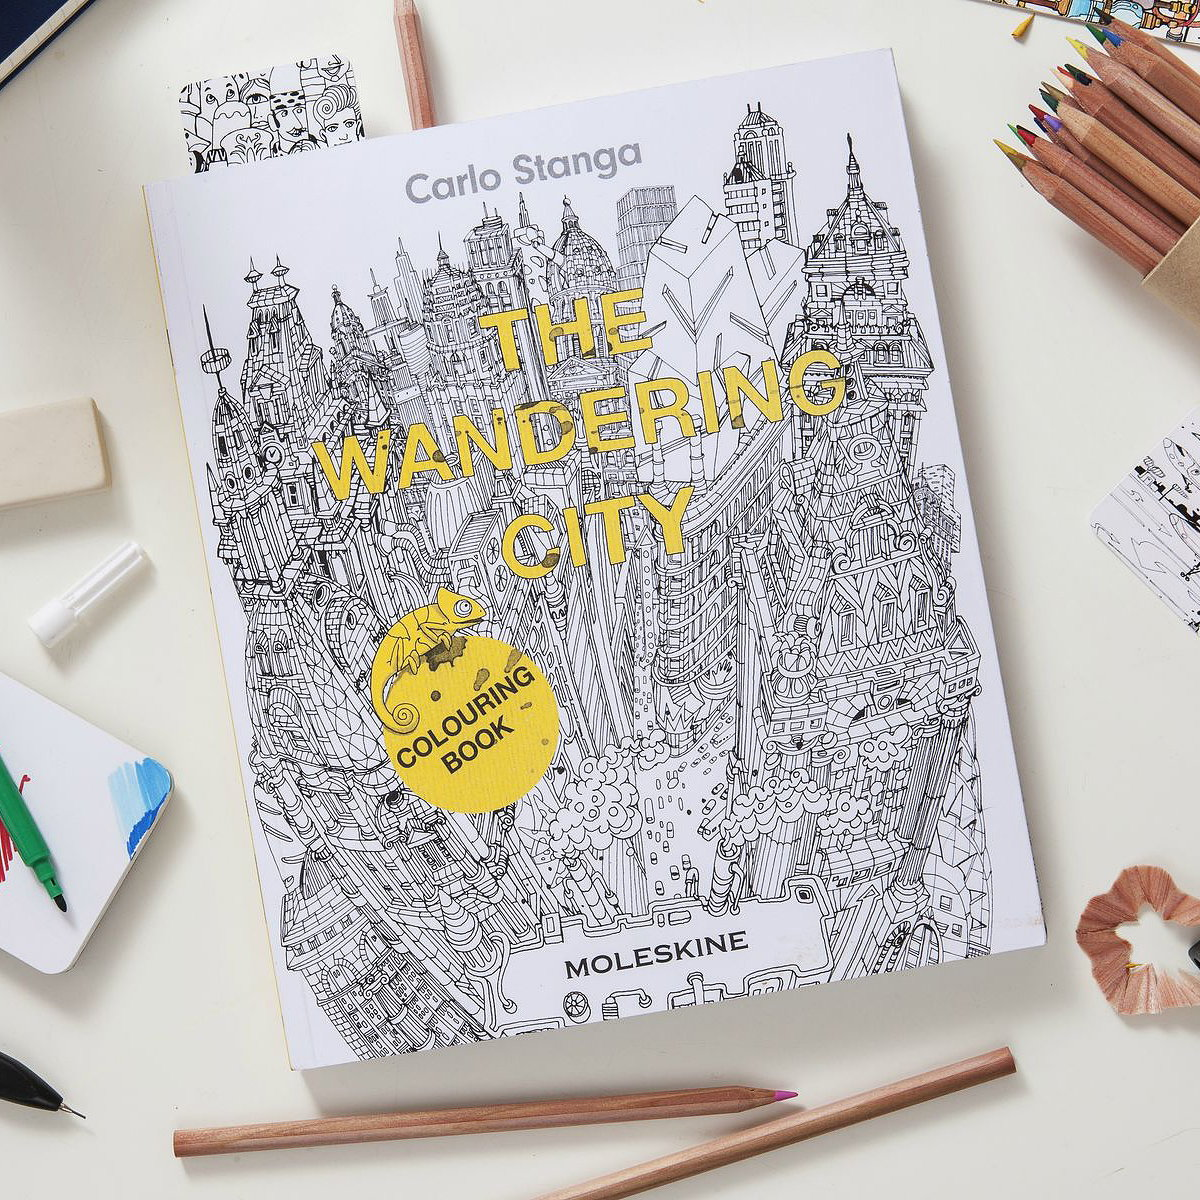 Moleskine Launches Coloring Book for Adults